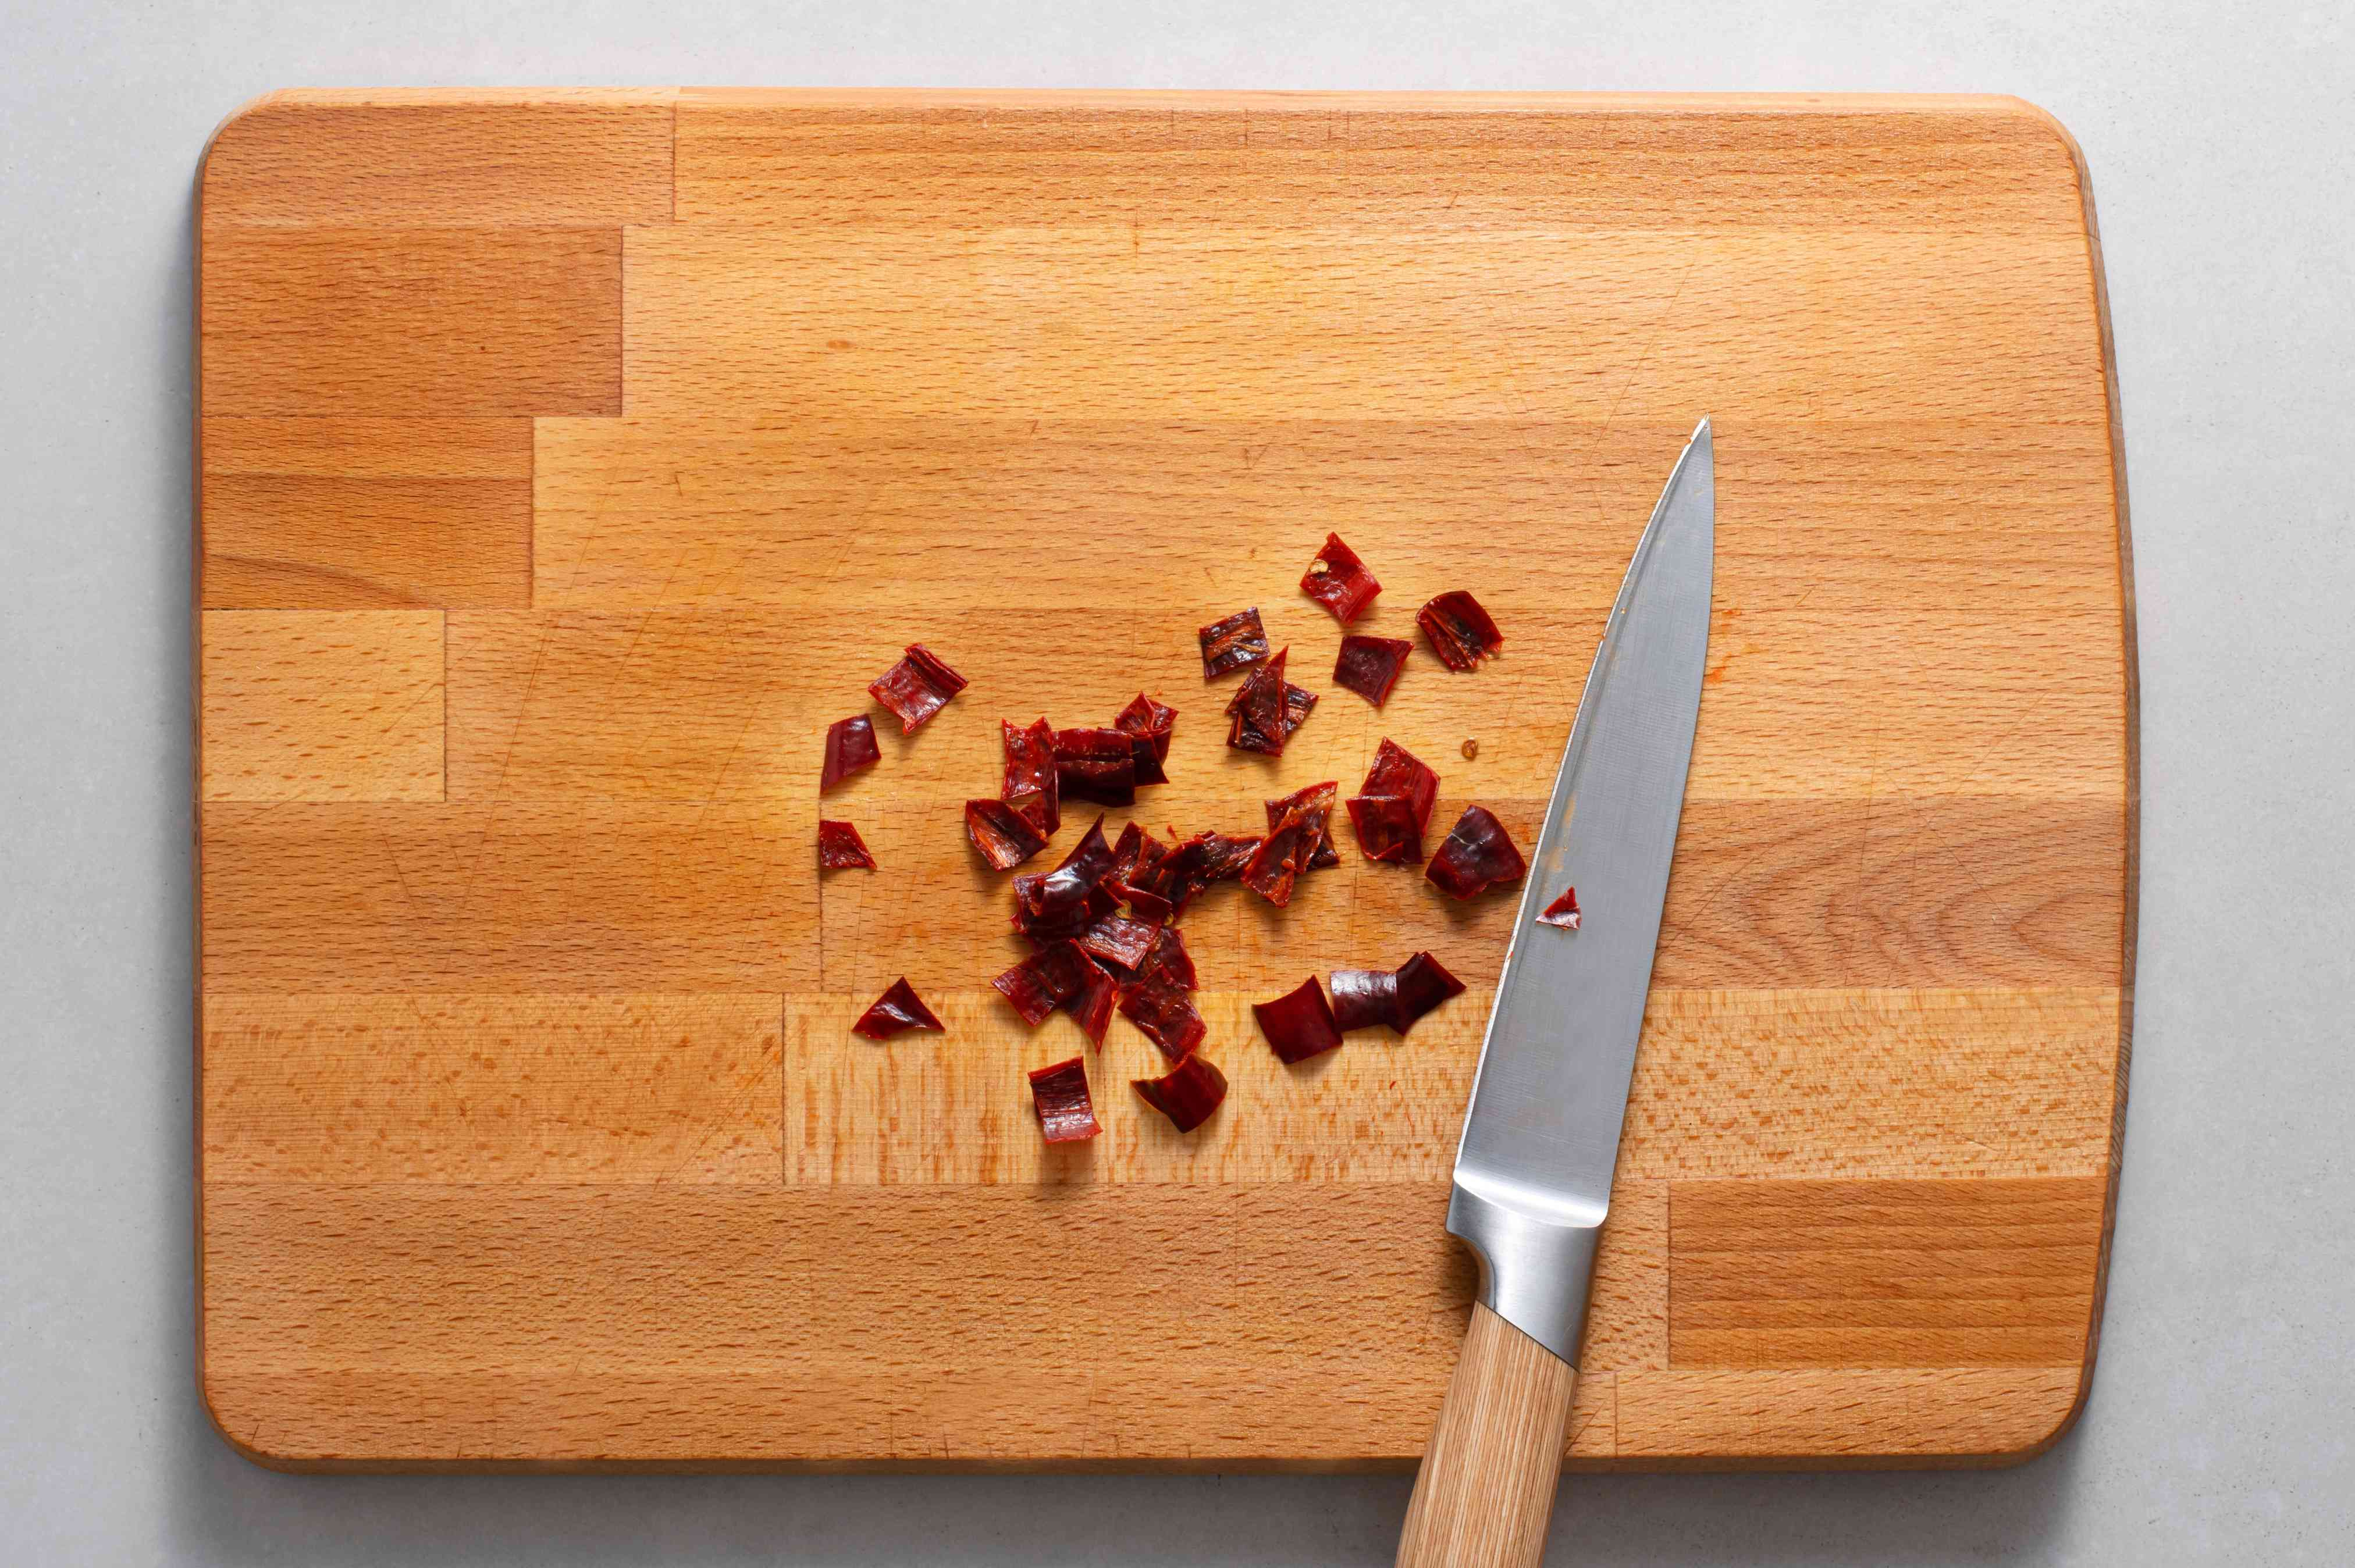 diced red chile on a cutting board